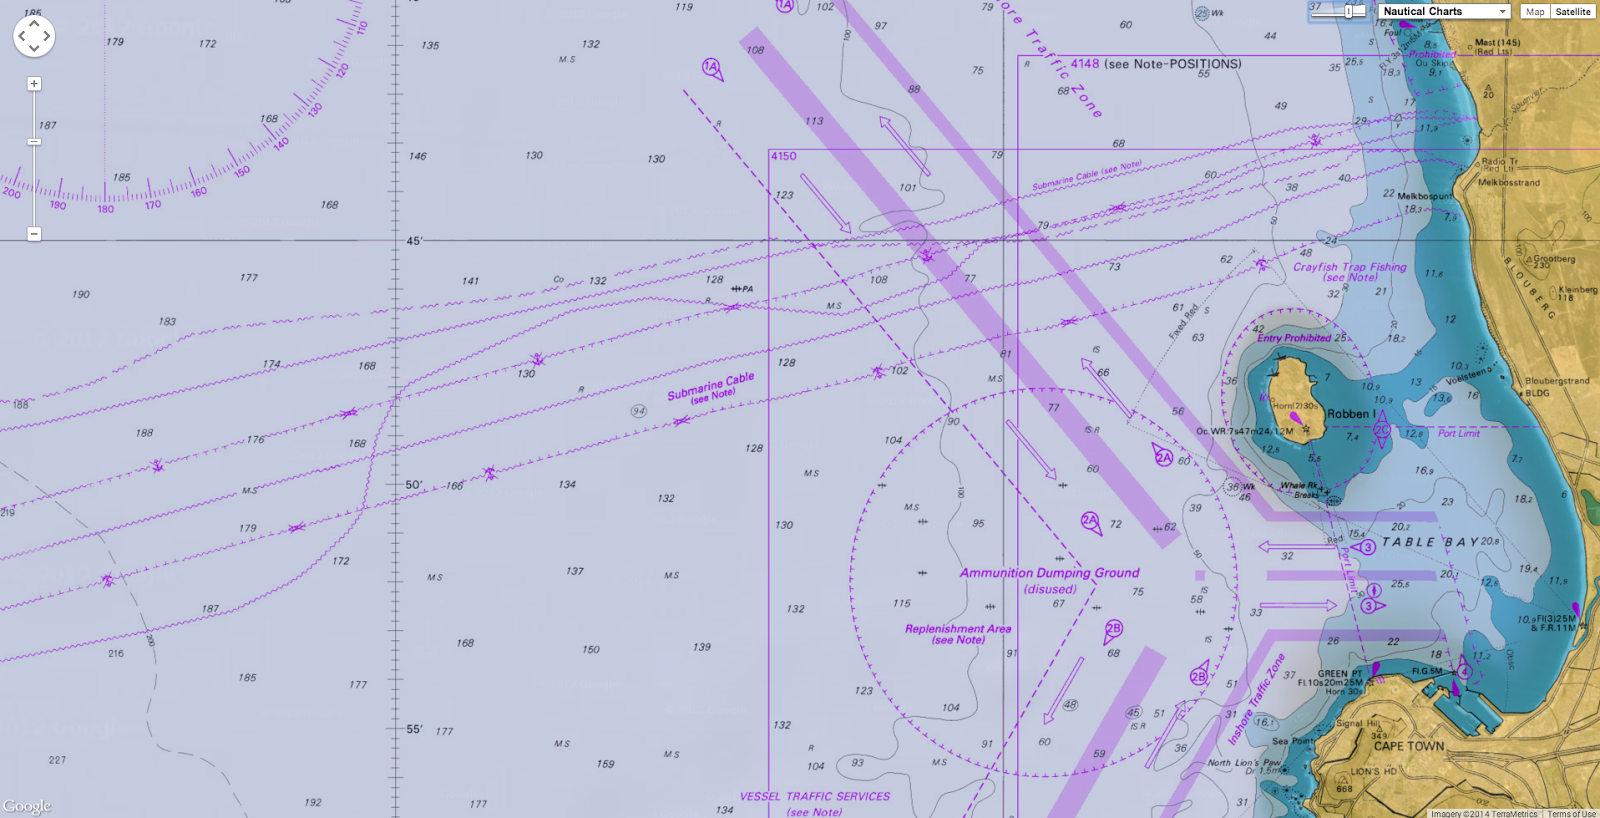 GeoGarage blog: Nautical maps no safeguard against subsea